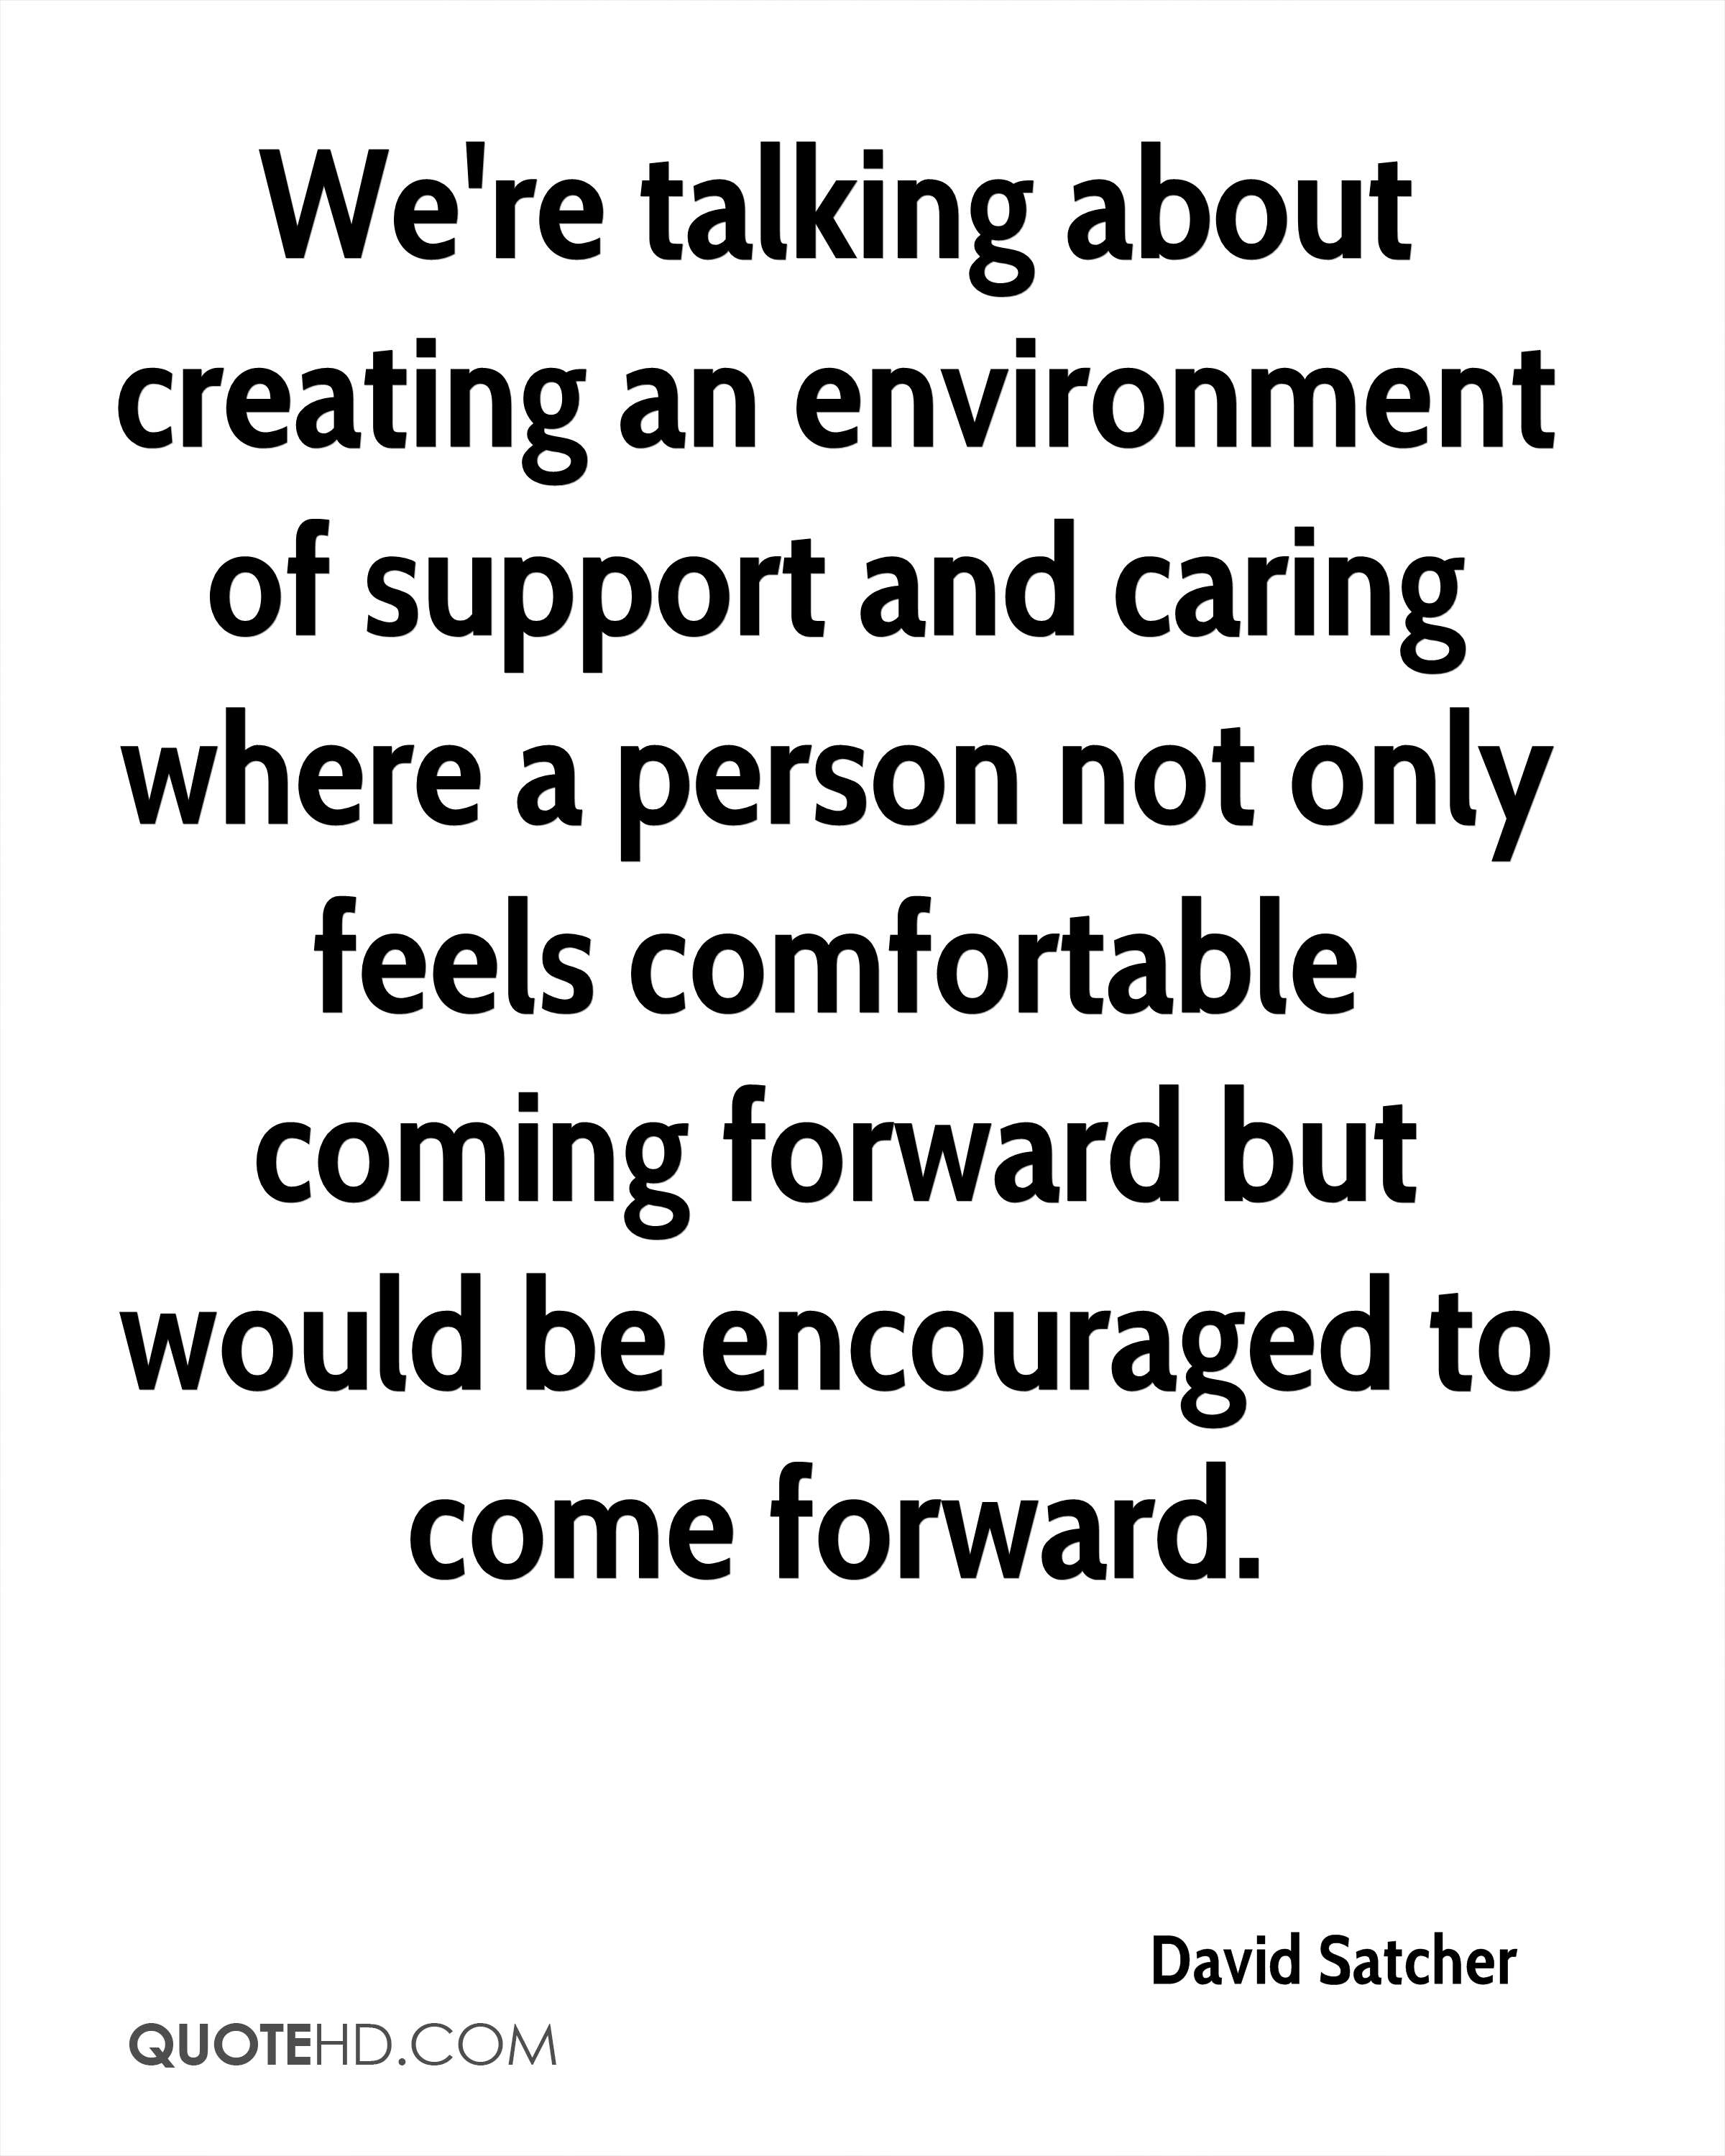 We're talking about creating an environment of support and caring where a person not only feels comfortable coming forward but would be encouraged to come forward.